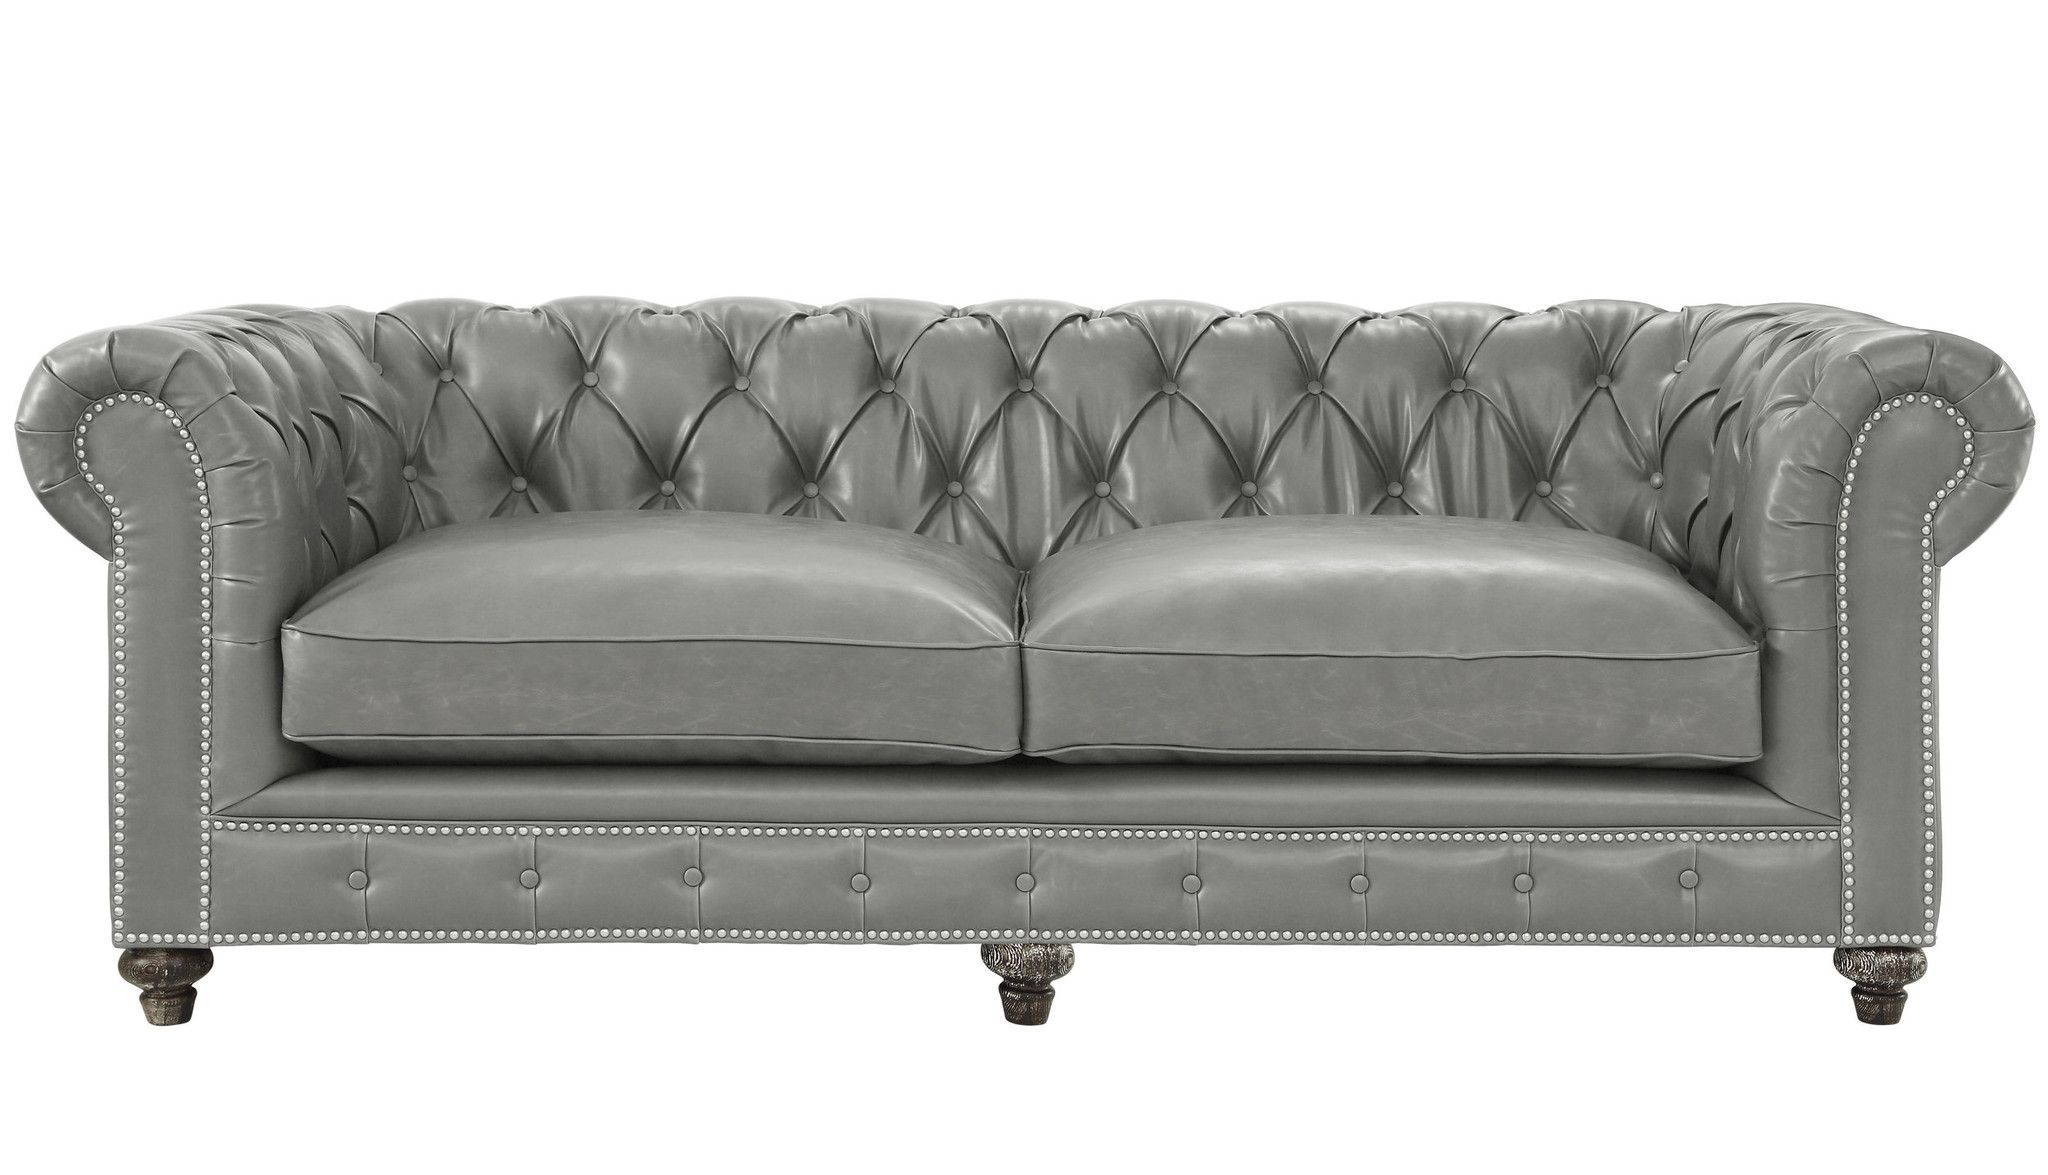 TOV Furniture Modern Durango Rustic Grey Leather Sofa TOV ...